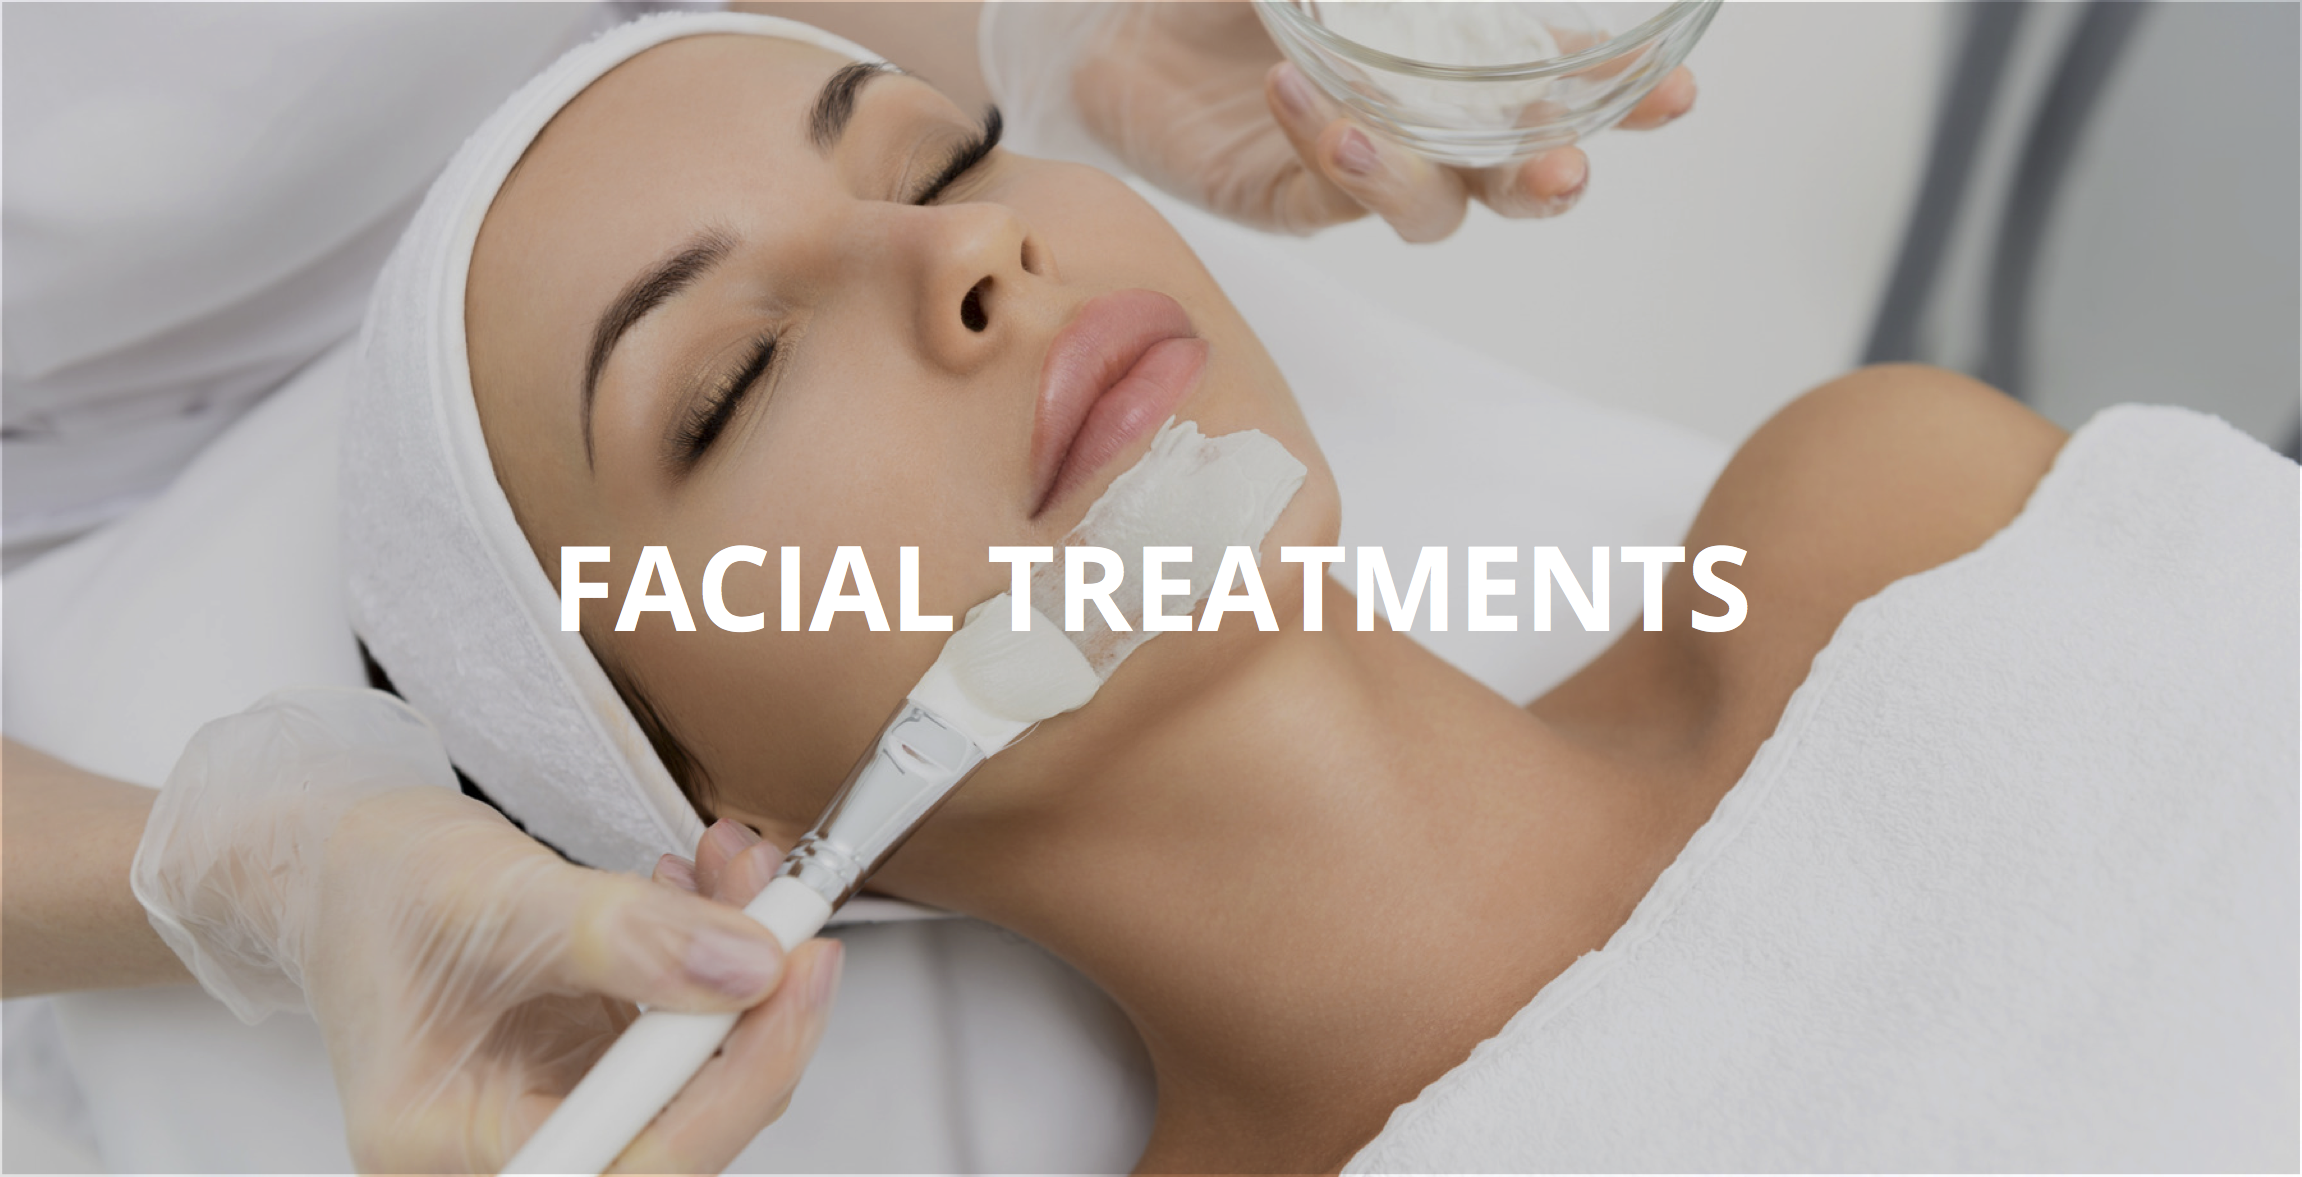 Copy of La Therapie Spa in Cary Voted Best Facial in The Triangle